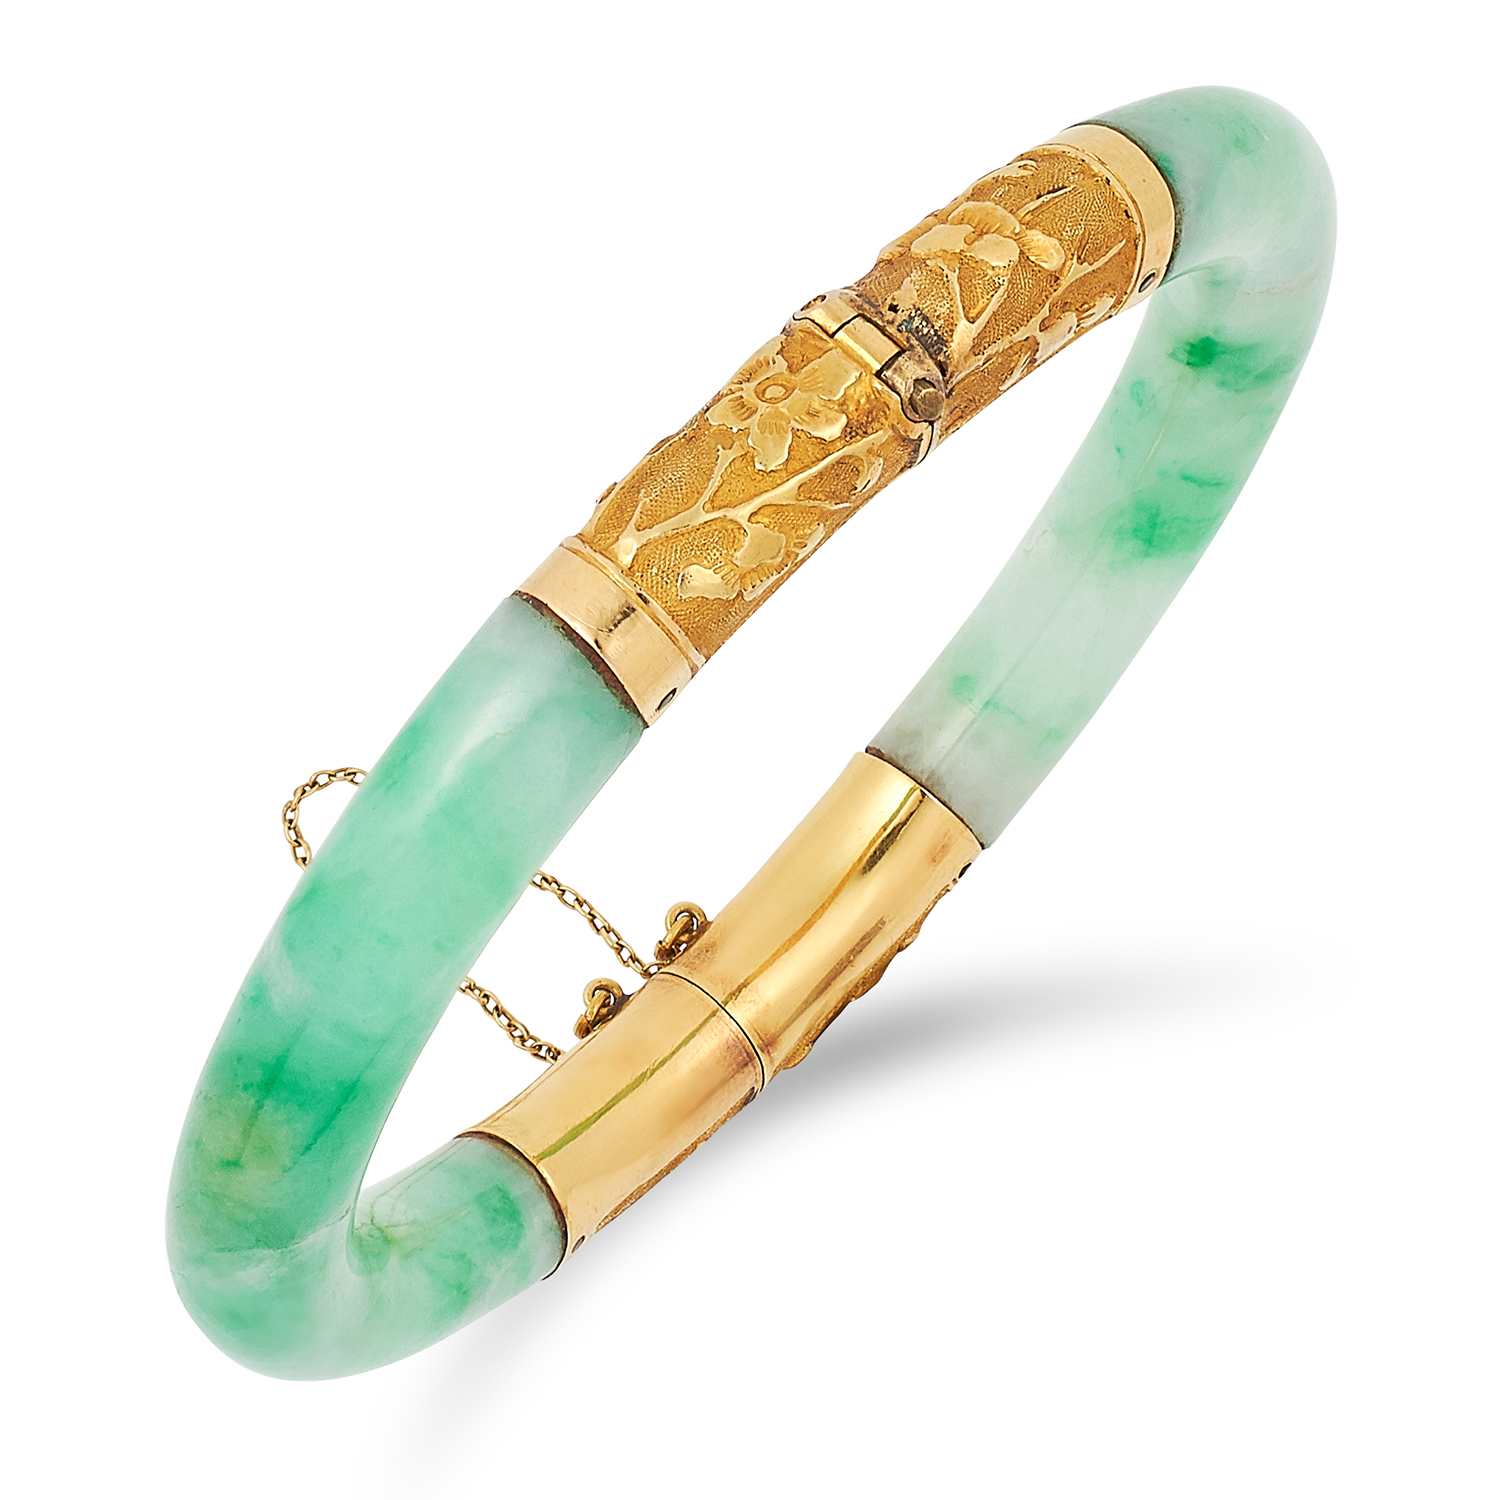 Los 68 - A CHINESE JADEITE JADE BANGLE comprising of two pieces of polished jade, 5.5cm inner diameter, 36.